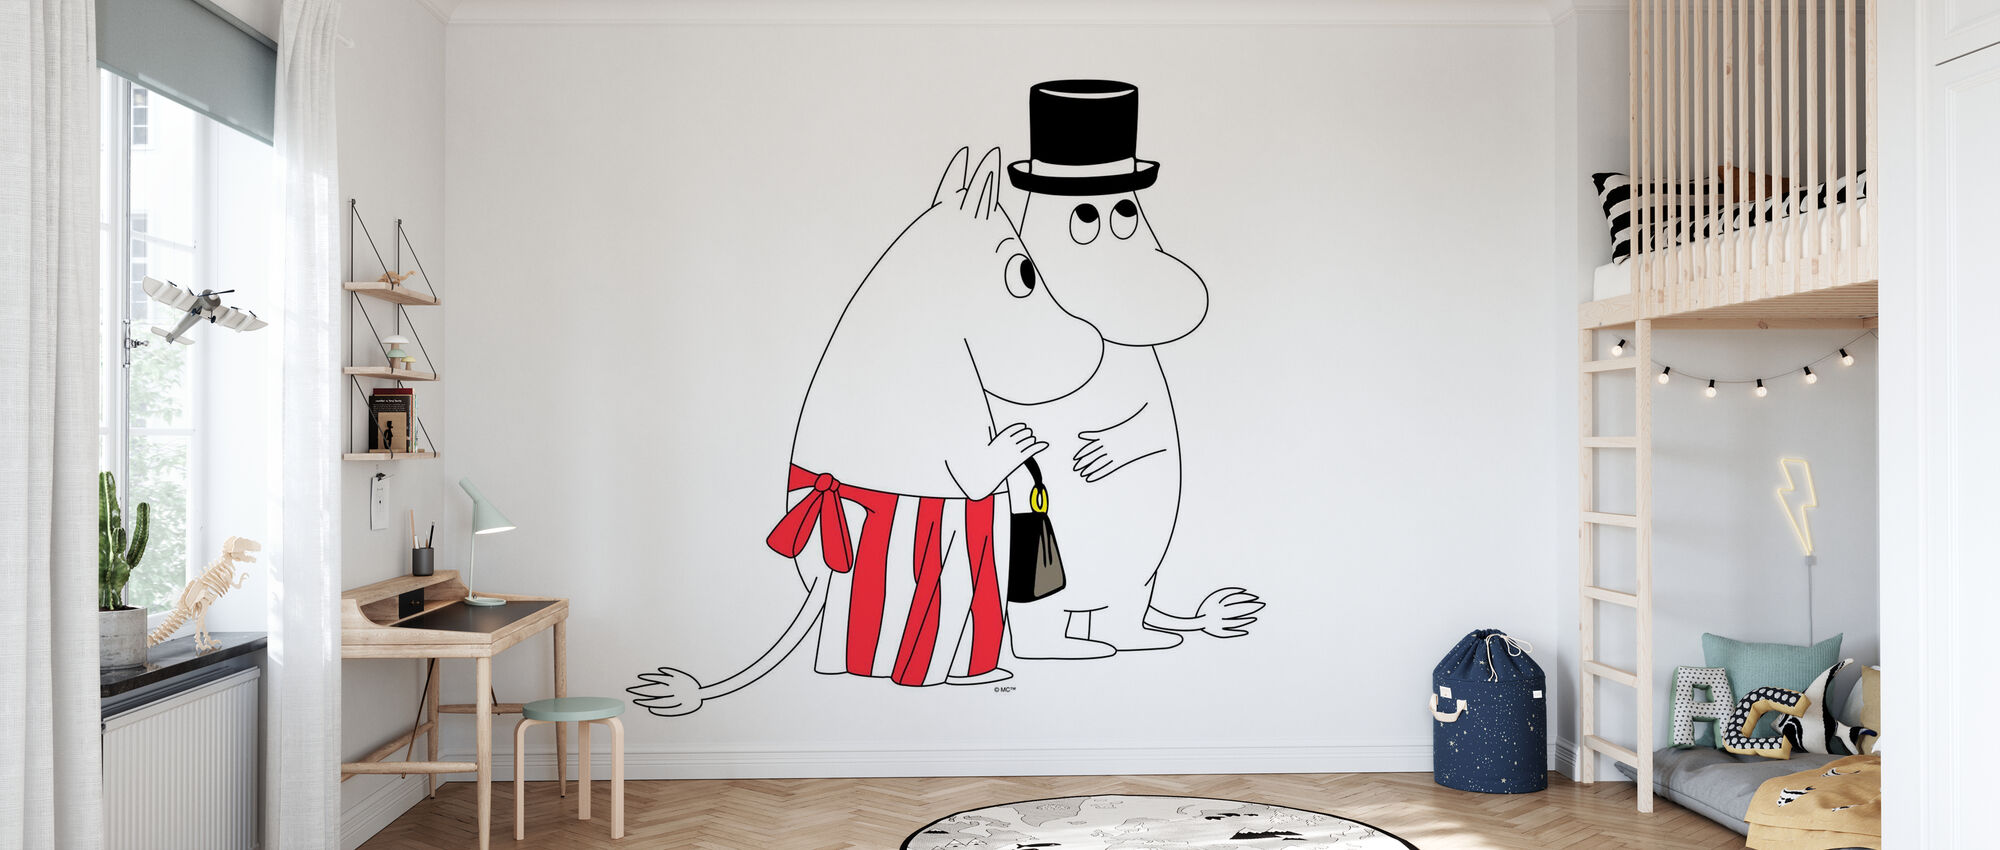 Moomin - Moominmamma and Moominpappa - Wallpaper - Kids Room